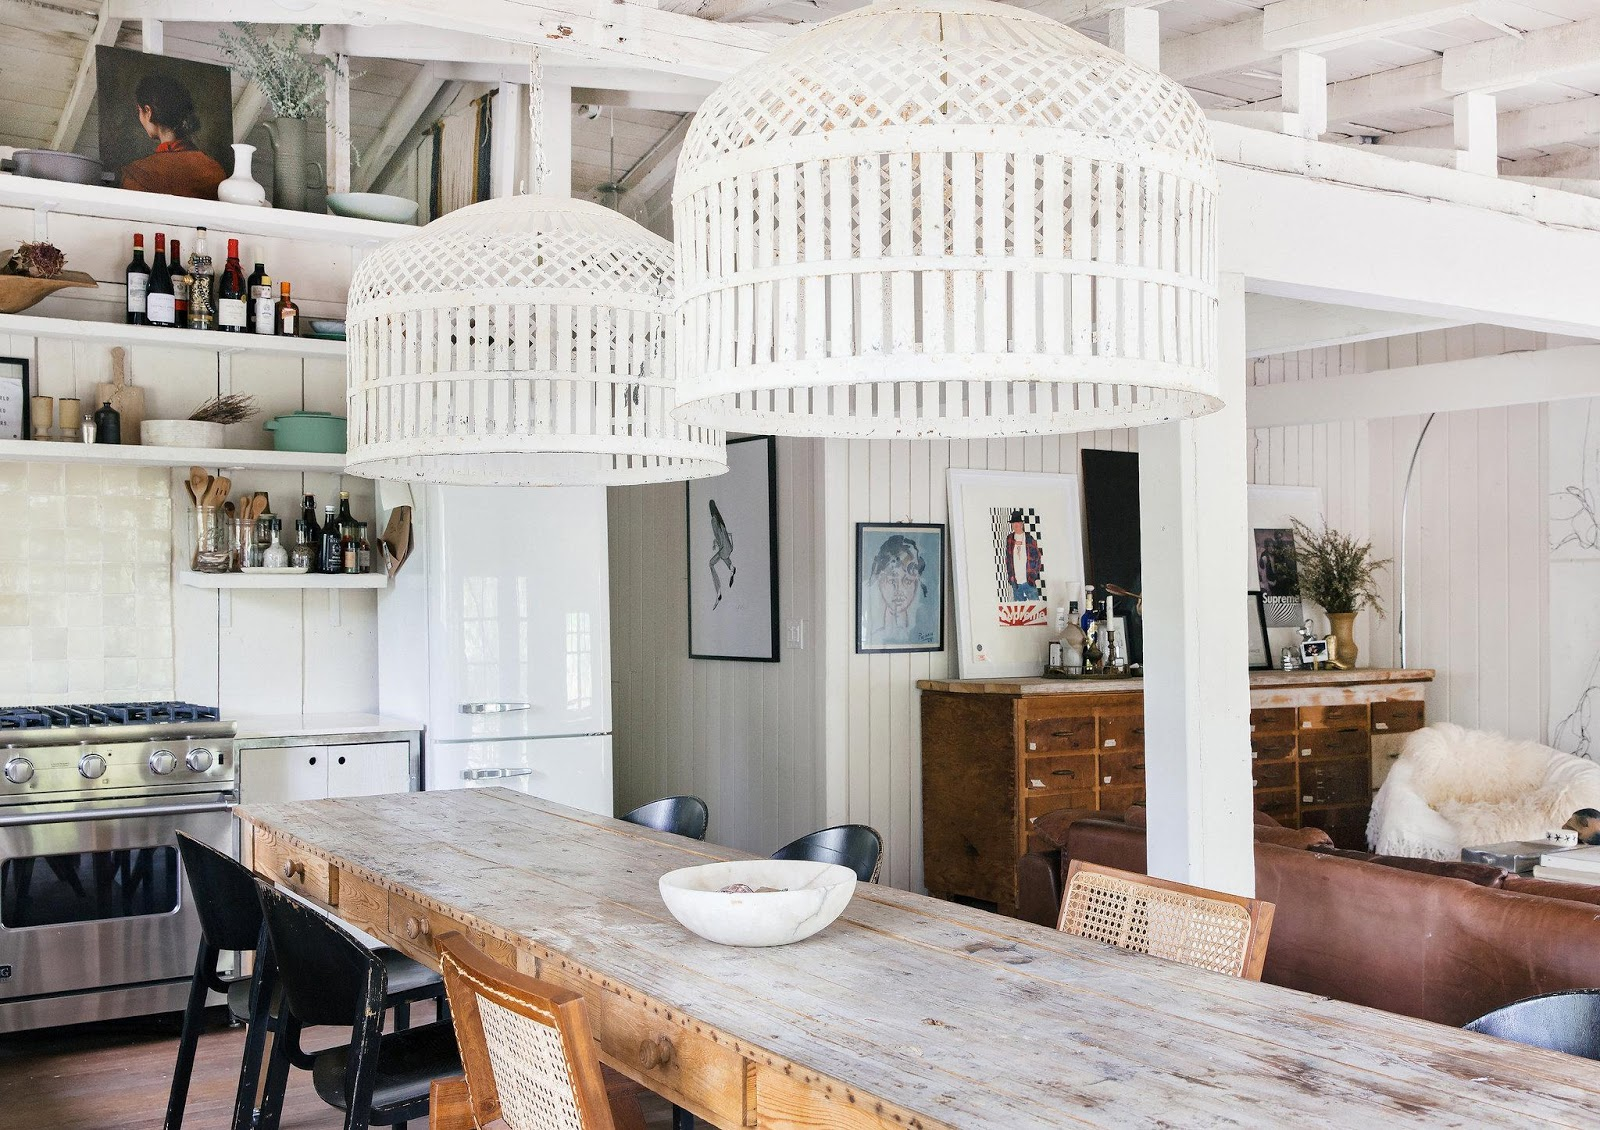 Leanne Ford's kitchen and dining room